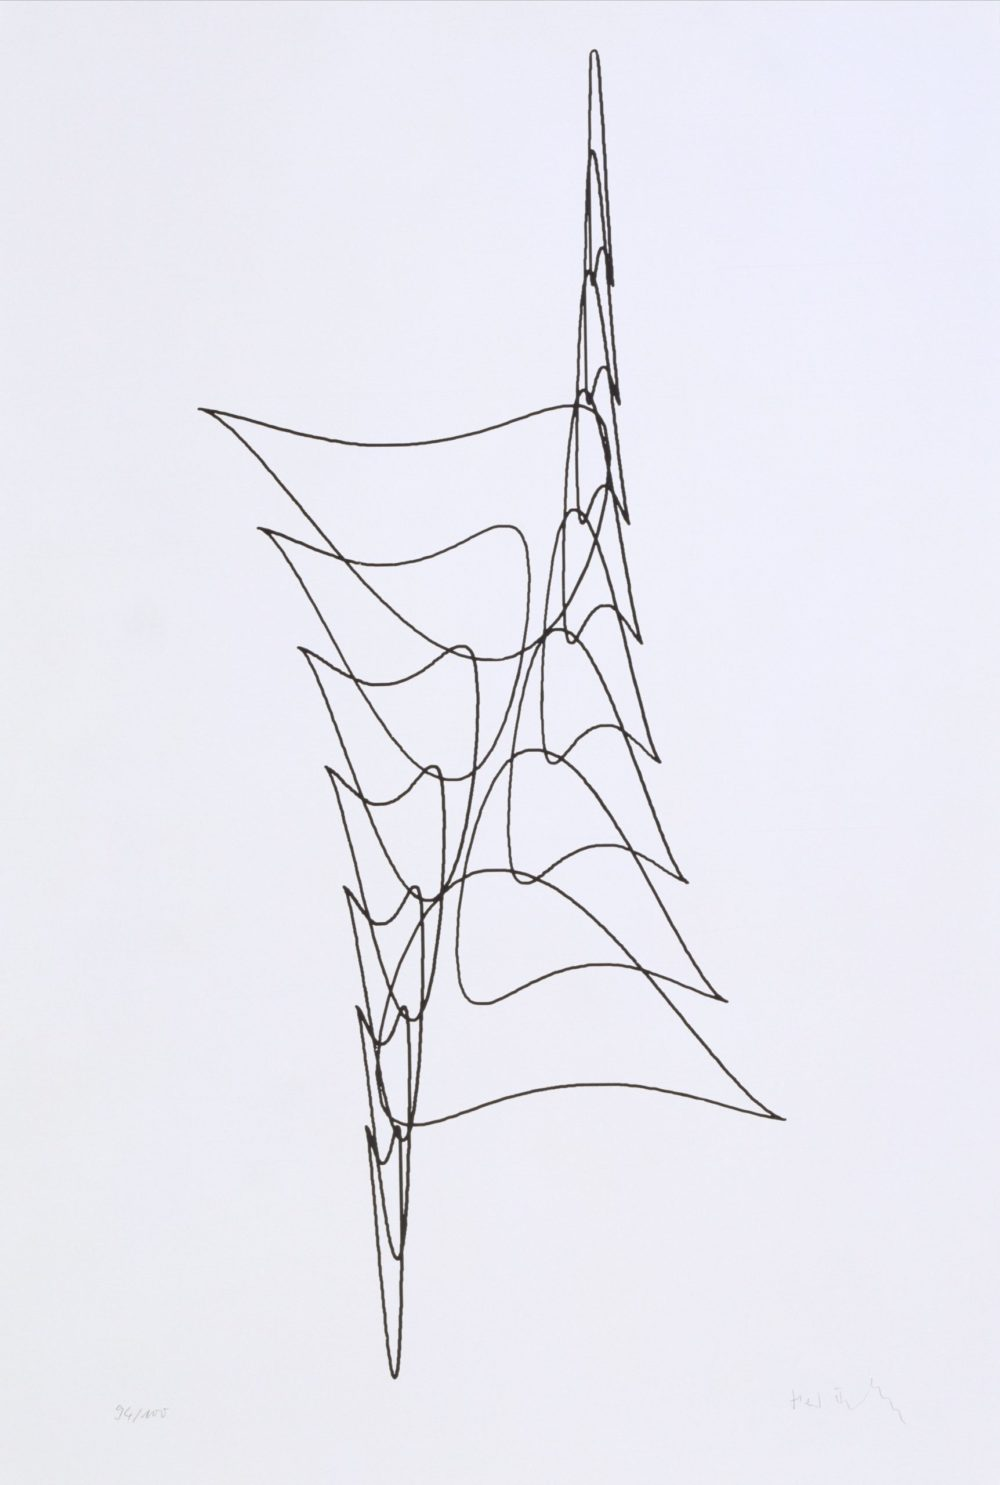 Herbert W. Franke in collaboration with Peter Henne, KAES serie, plotter drawing, ink on paper, 70 x 50 cm, 1969